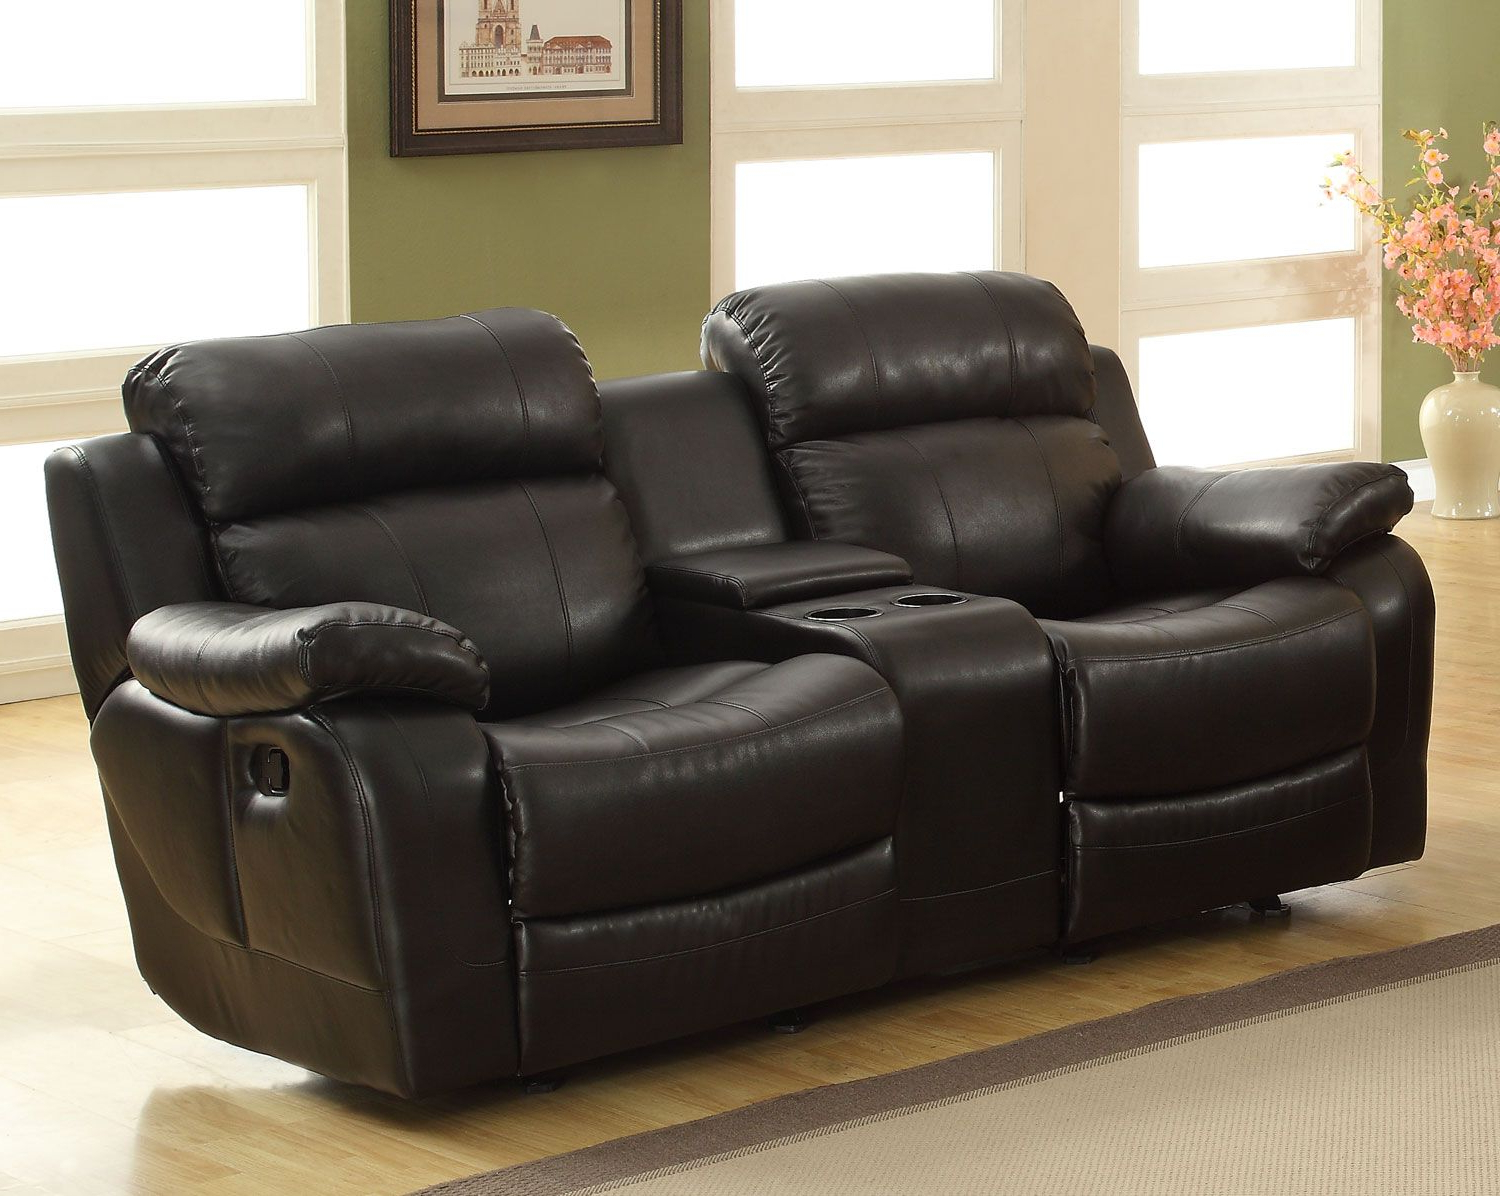 Homelegance Marille Love Seat Glider Recliner With Center Console Throughout Most Recently Released Travis Cognac Leather 6 Piece Power Reclining Sectionals With Power Headrest & Usb (Gallery 11 of 20)